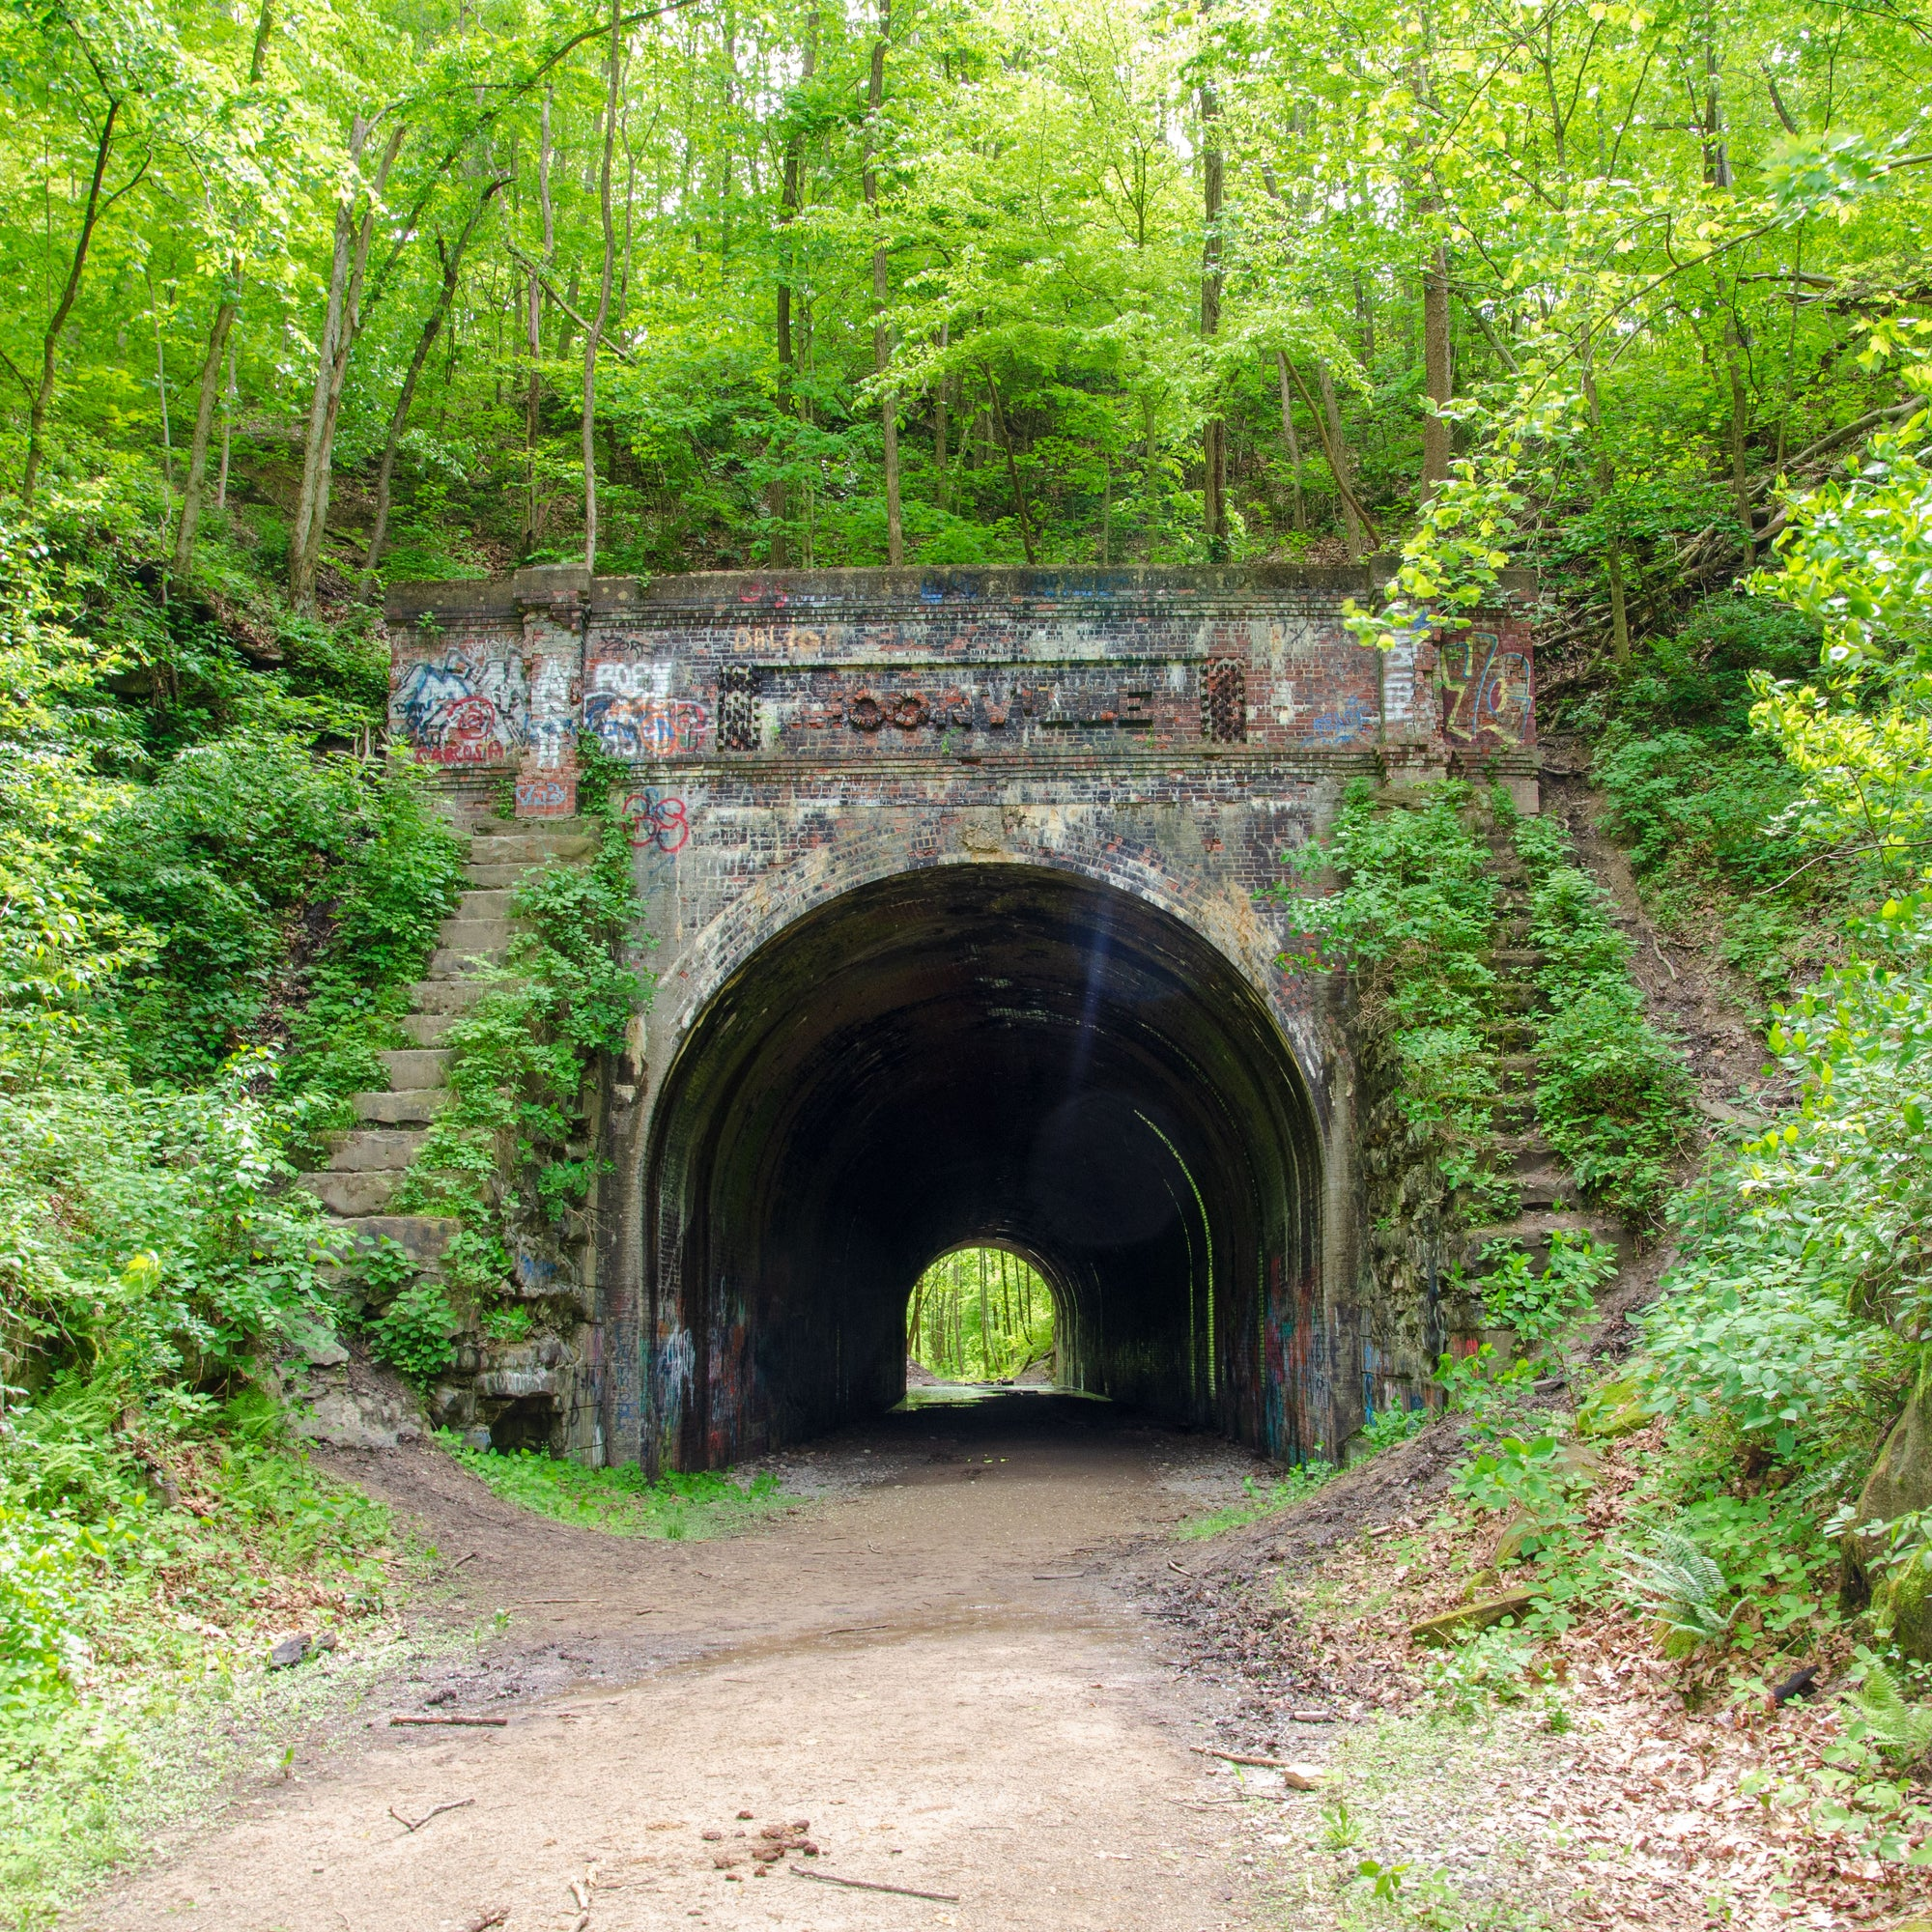 Hike 16 of 52-Moonville Rail Trail